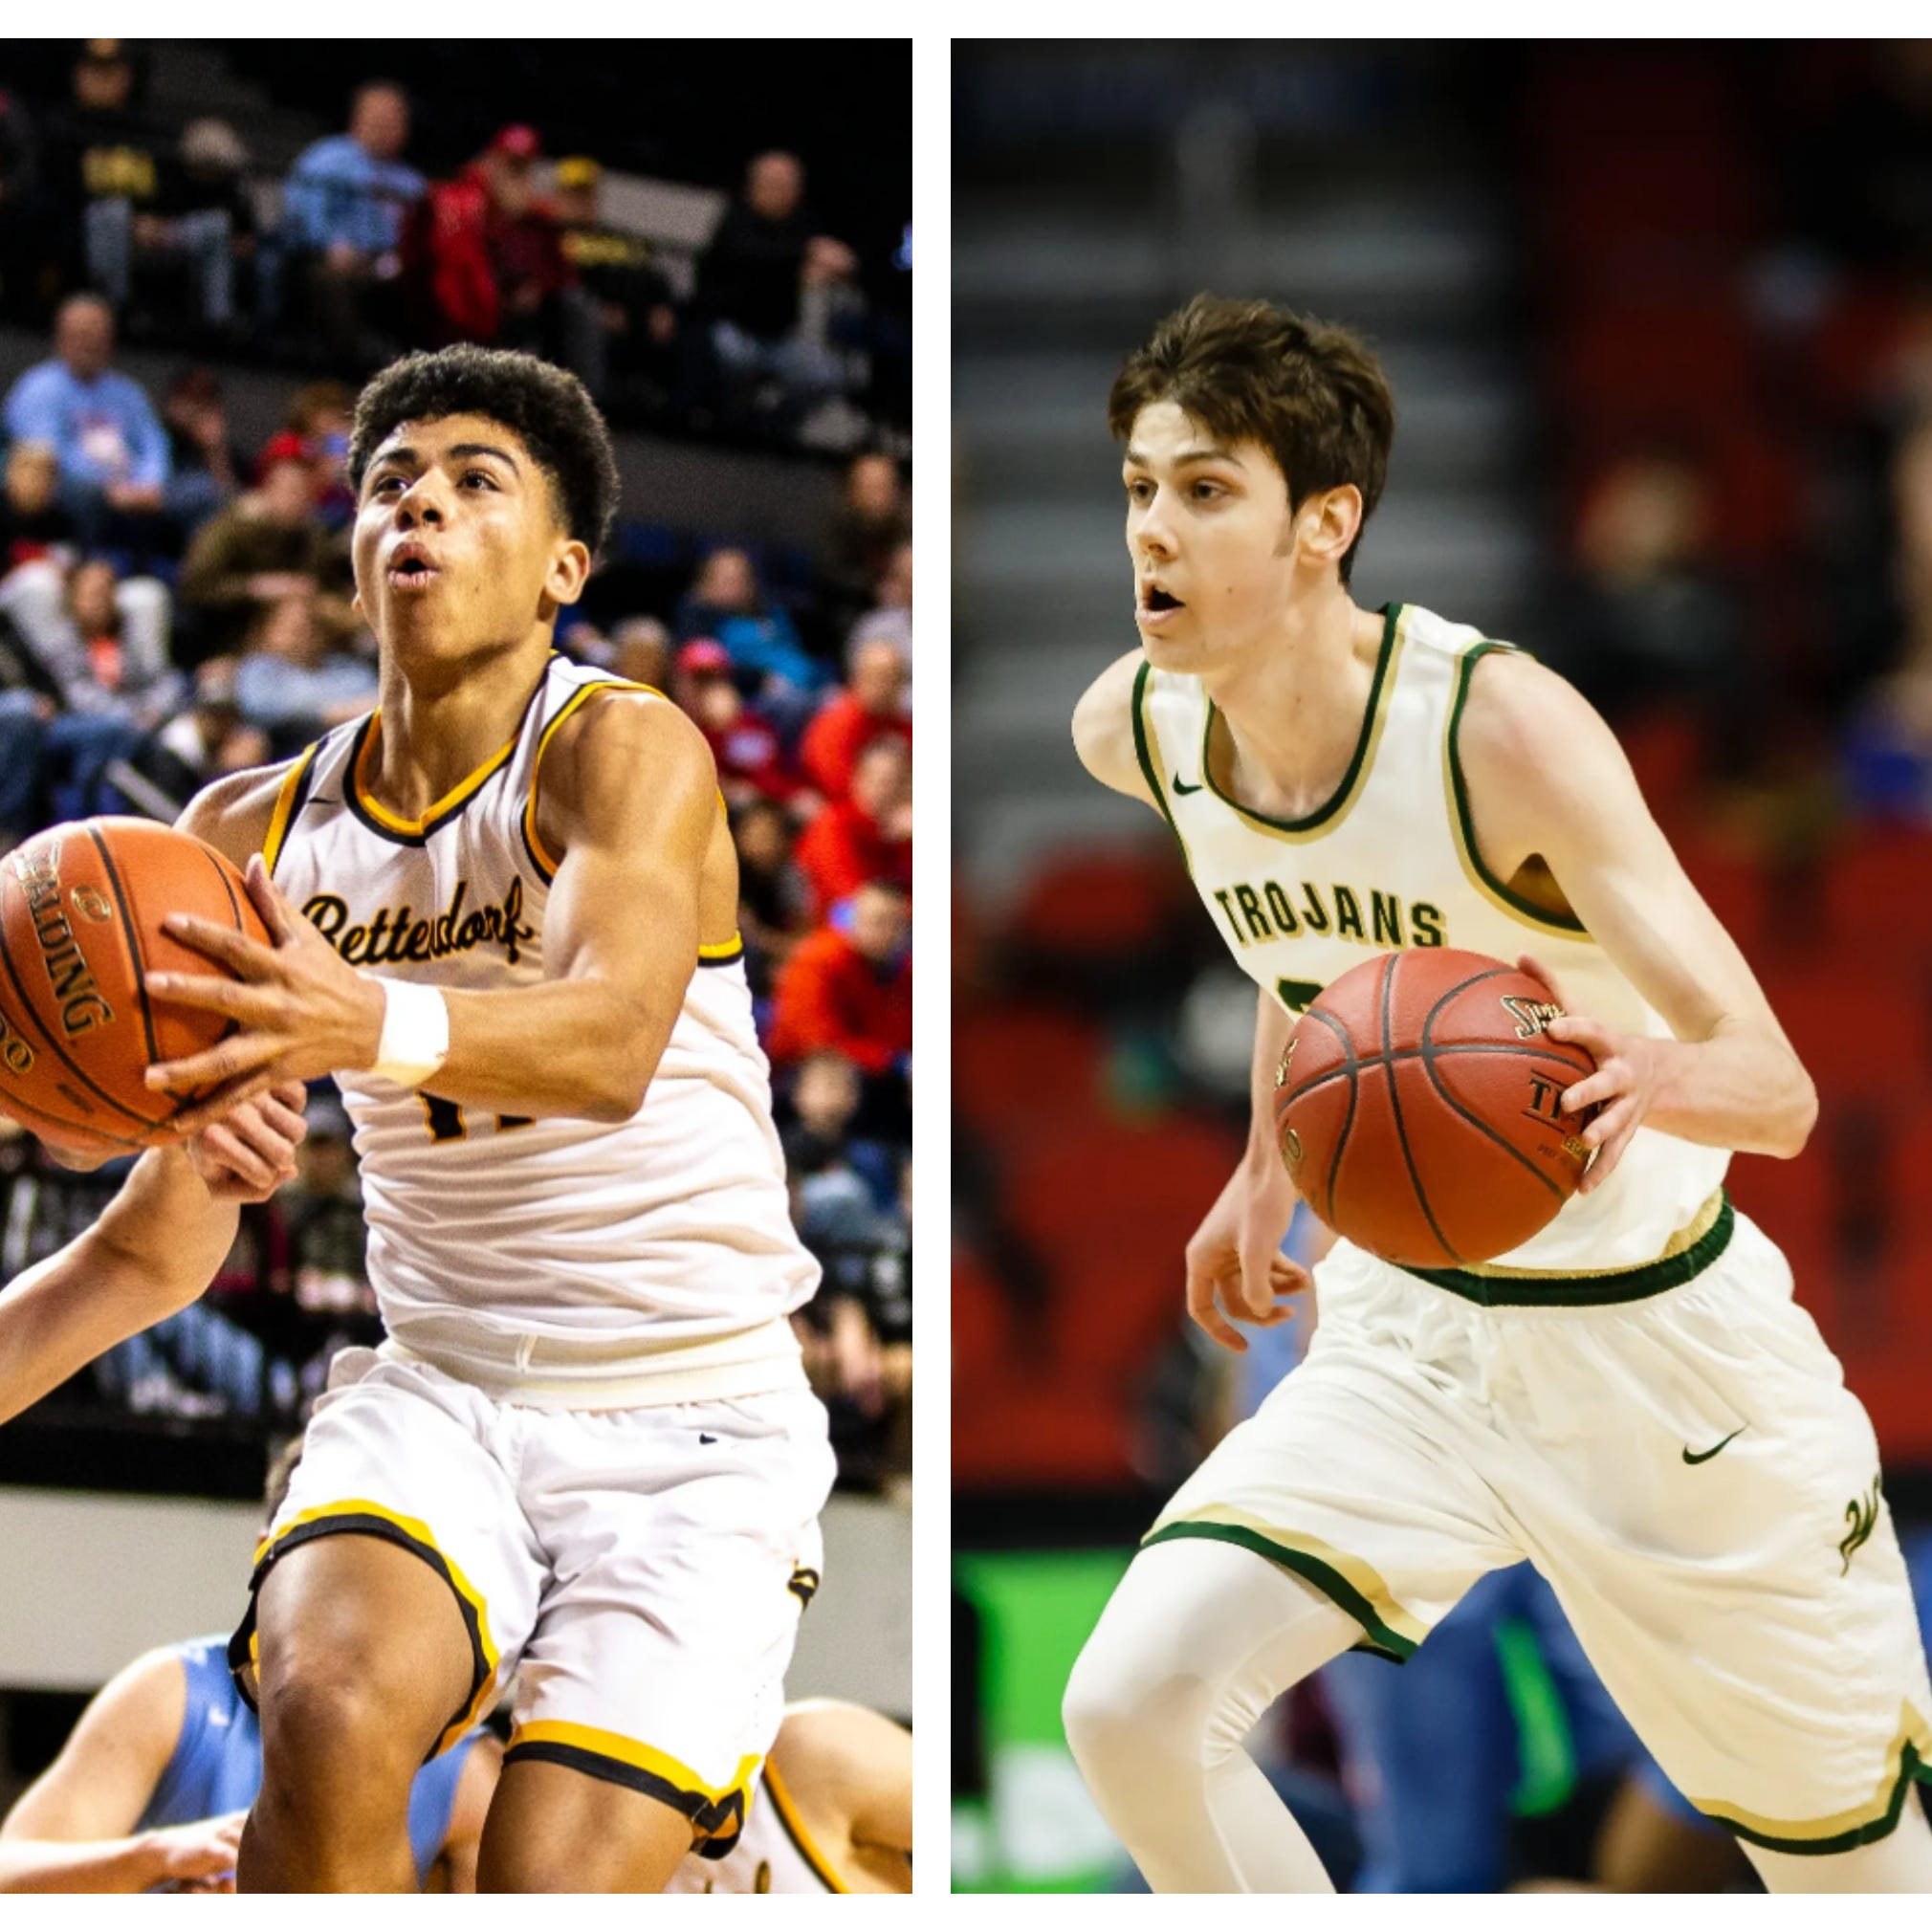 Meet the Register's 2018-19 All-Iowa boys' basketball player of the year finalists